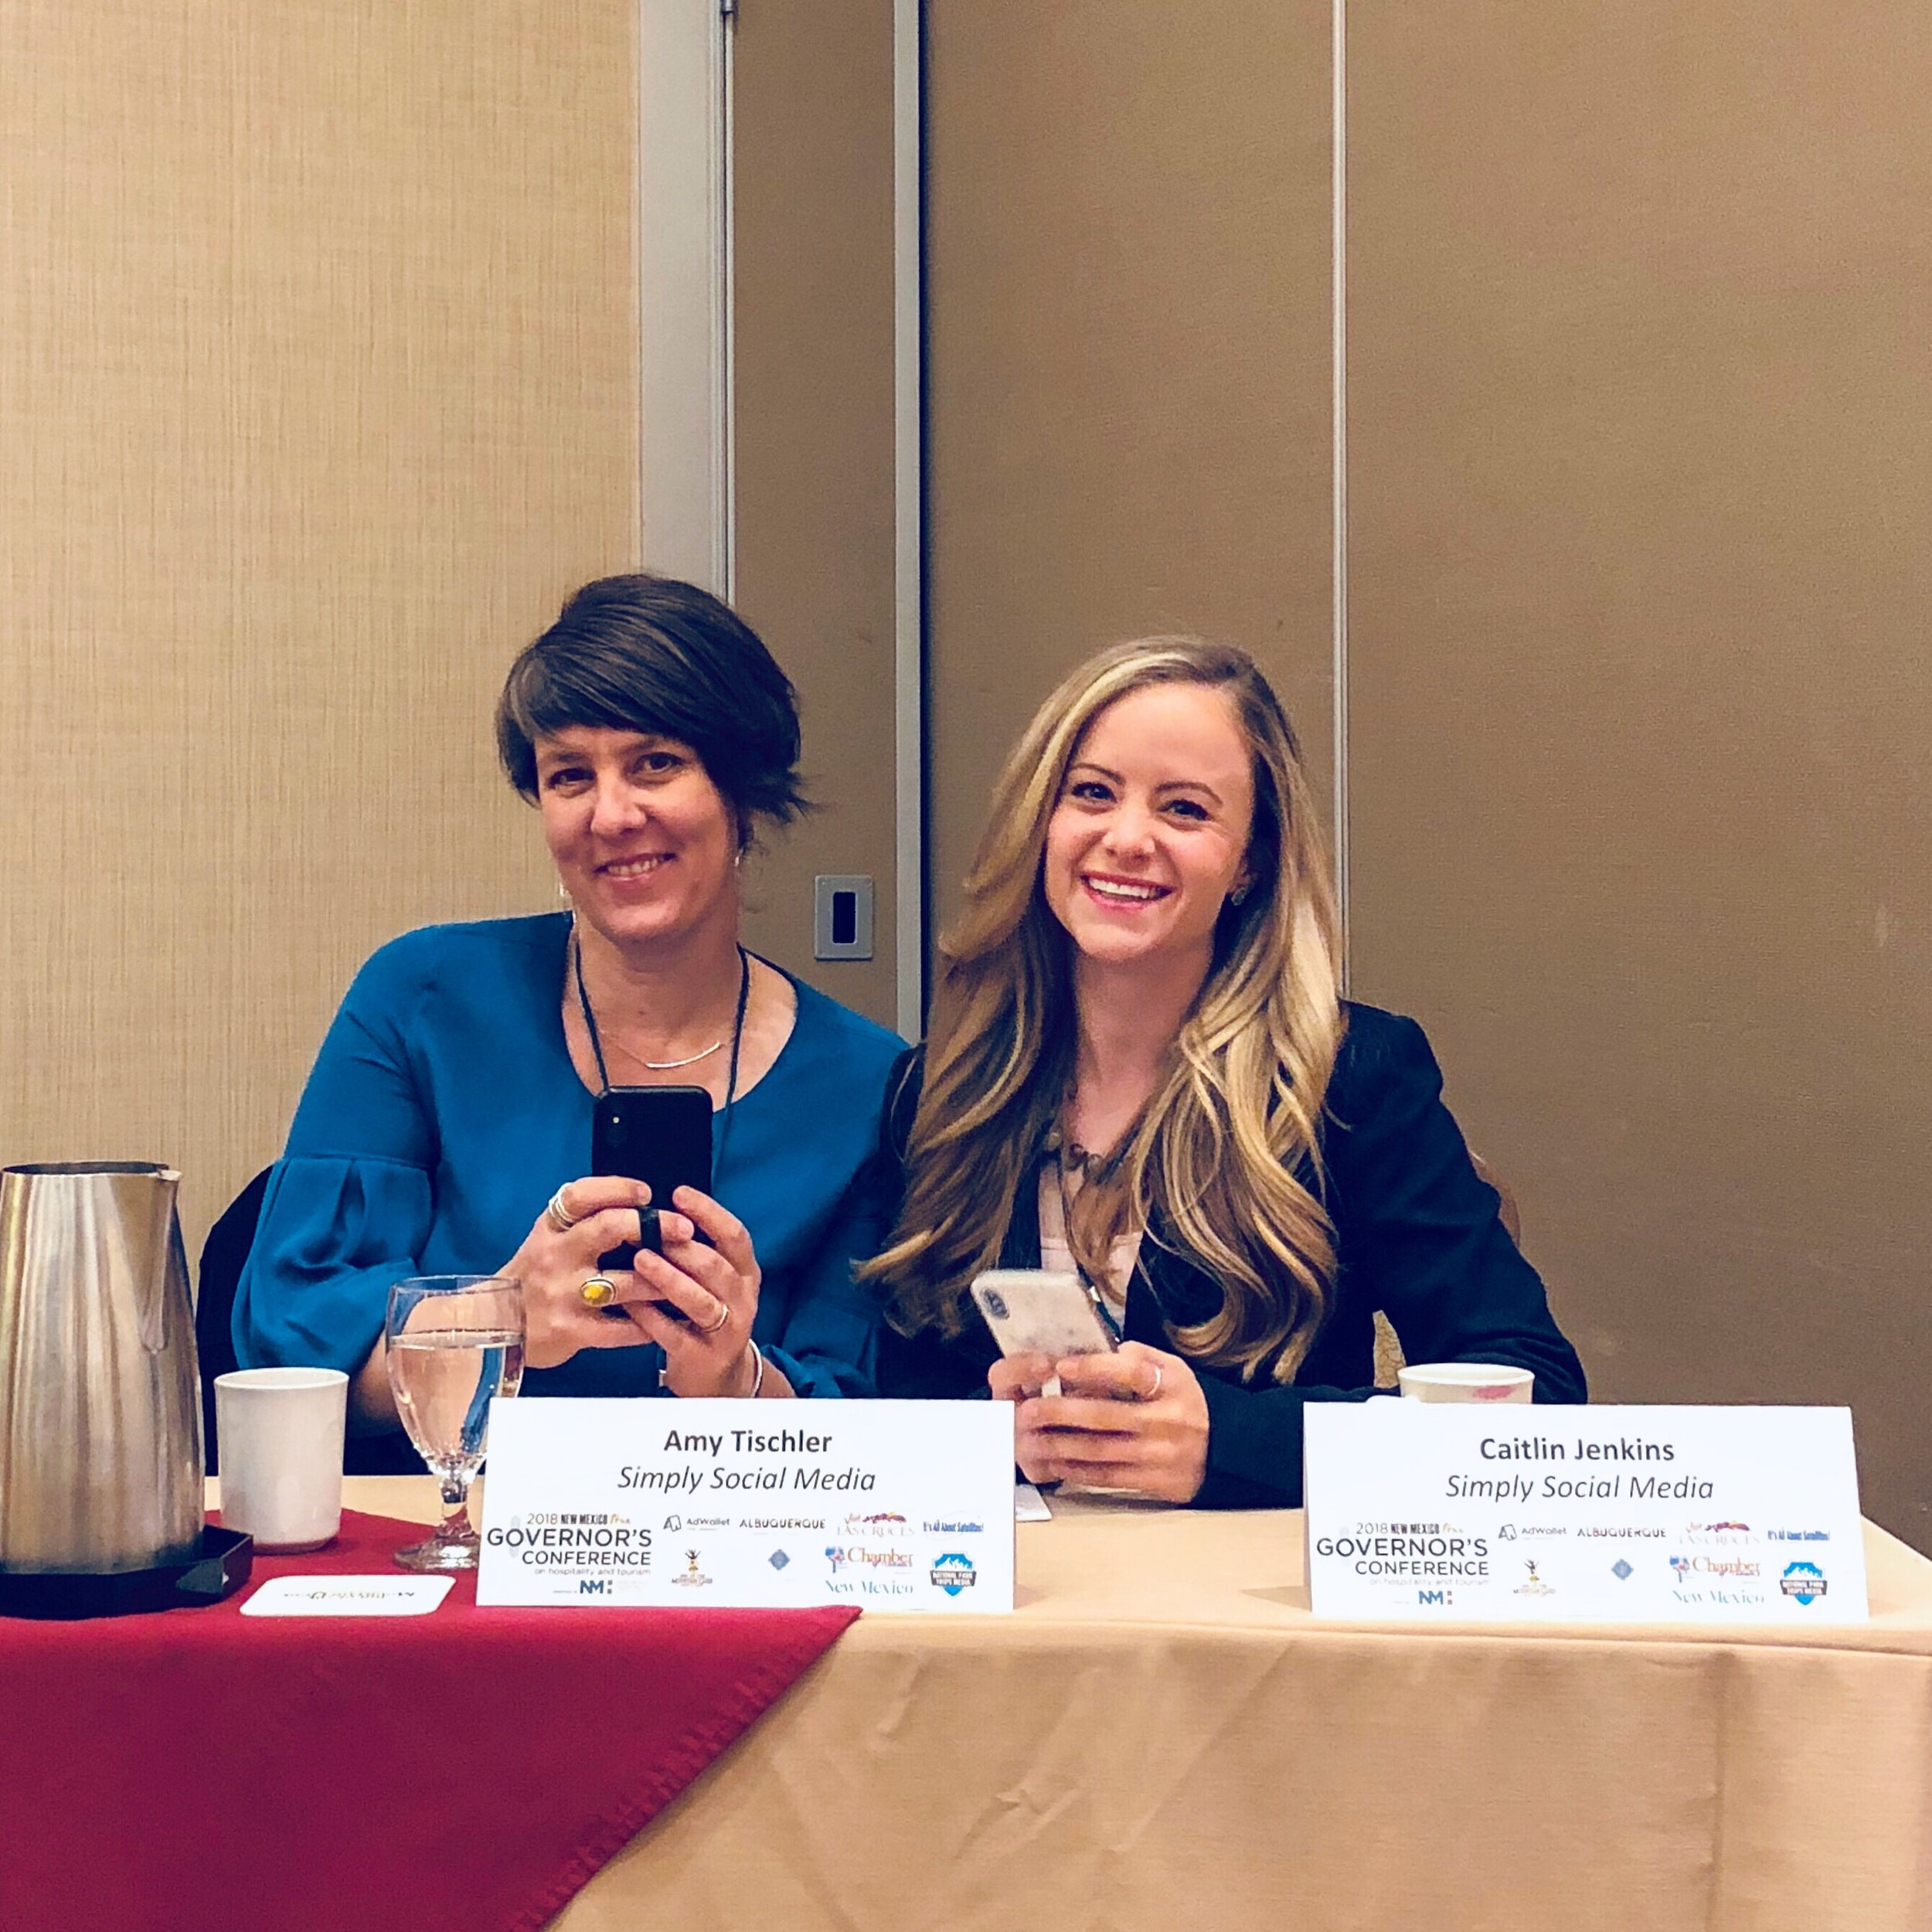 """Amy Tischler and Caitlin Jenkins on the """"Social influencers, the travel writers of tomorrow"""" panel on May 8, 2018. Photo by Kitty Stebbins @this.kitty"""